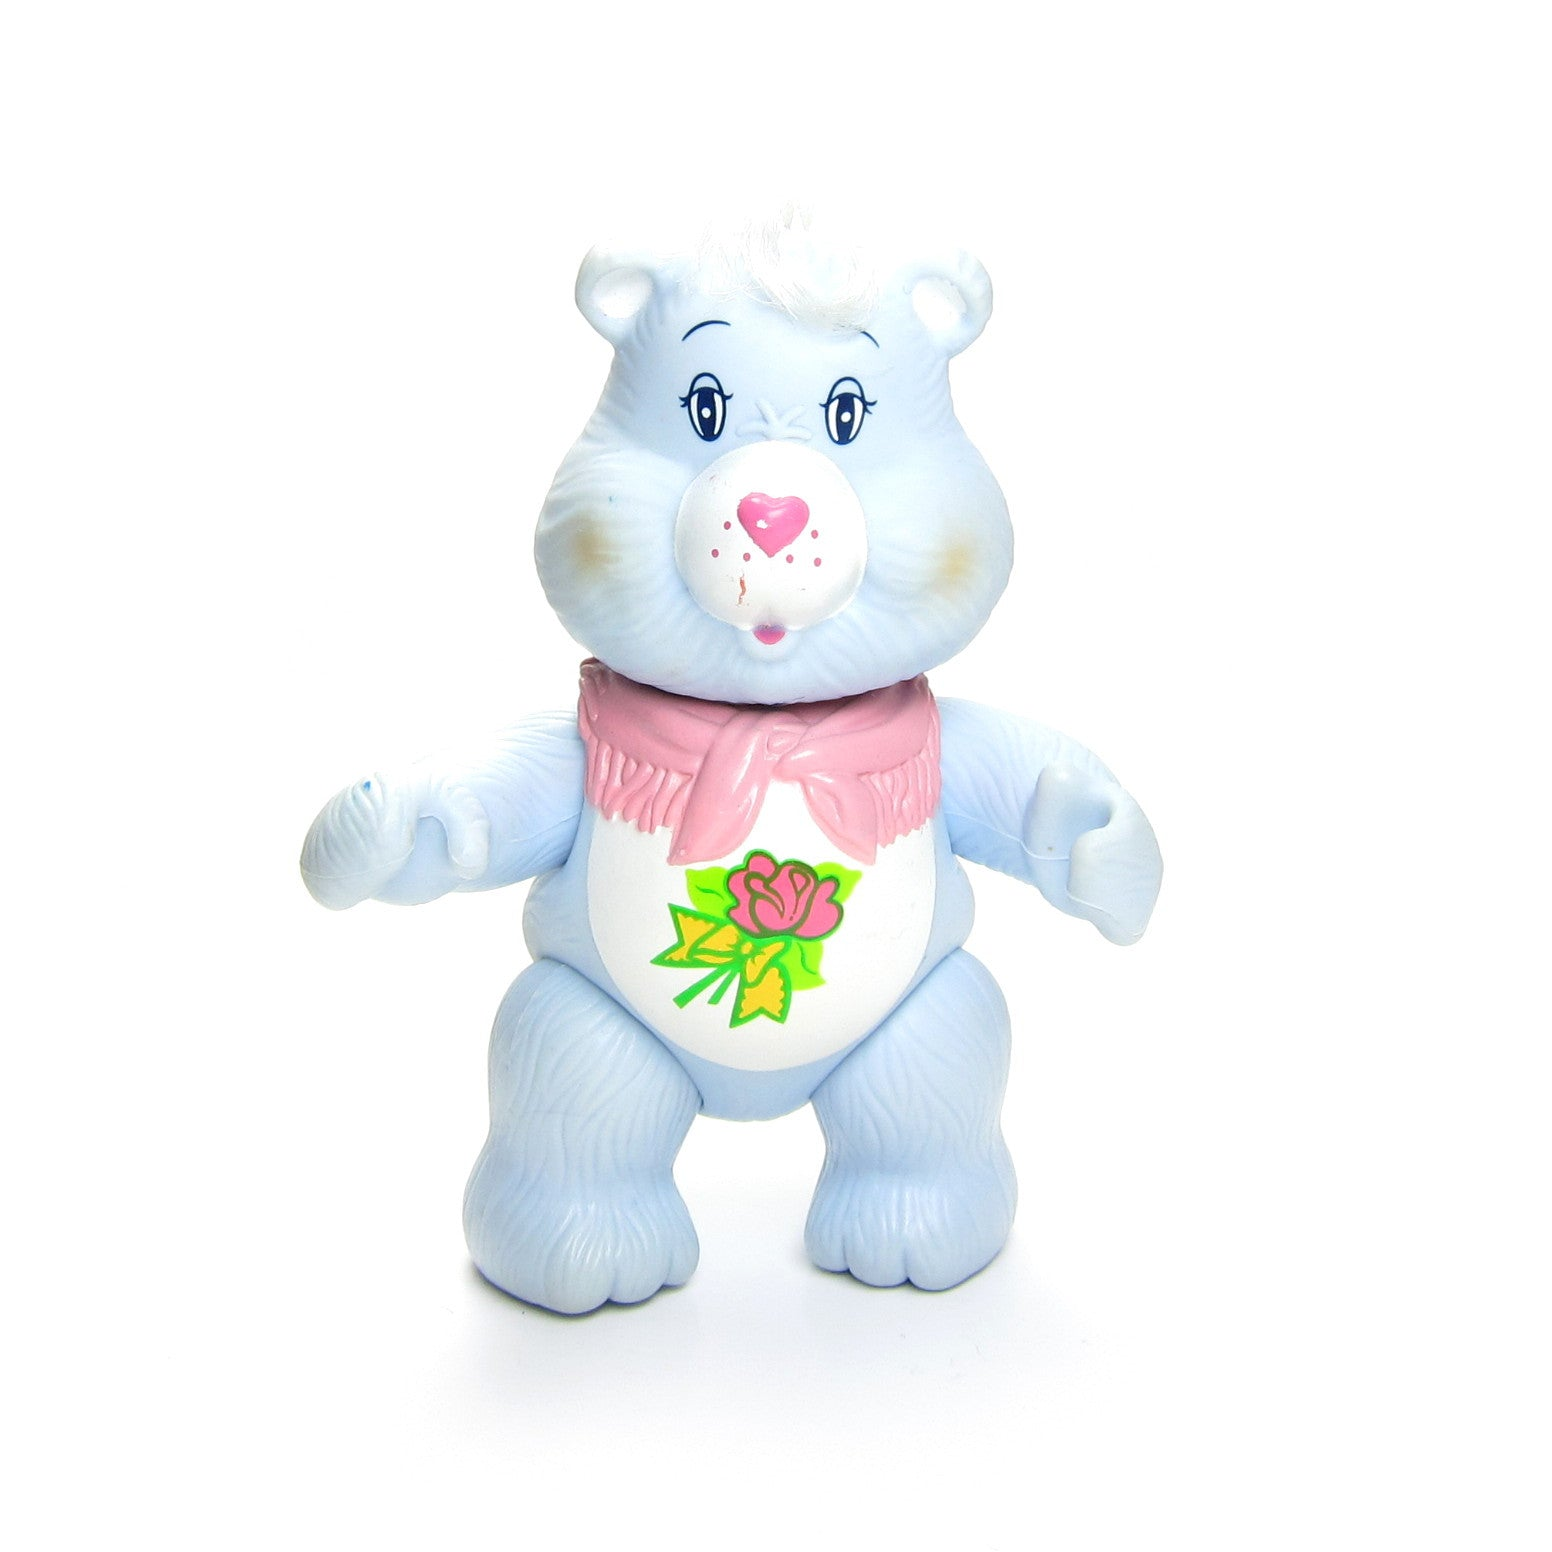 Grams Bear Vintage Care Bears Poseable 3-Inch Figure